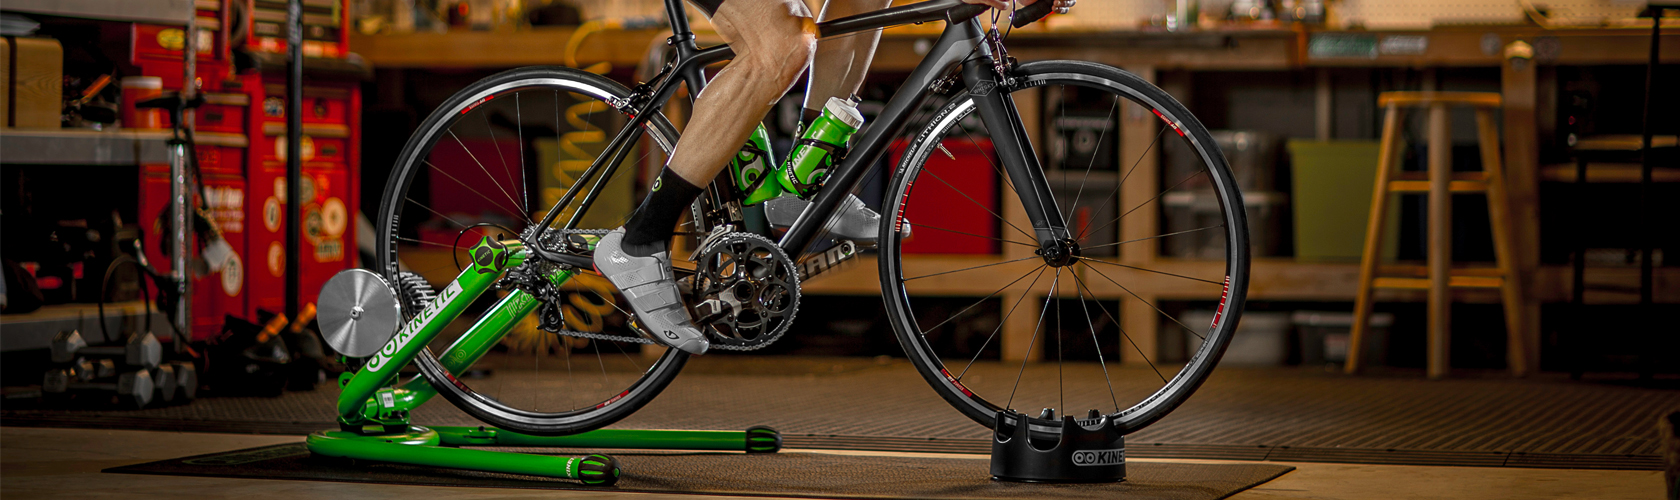 Rider training on a turbo trainer